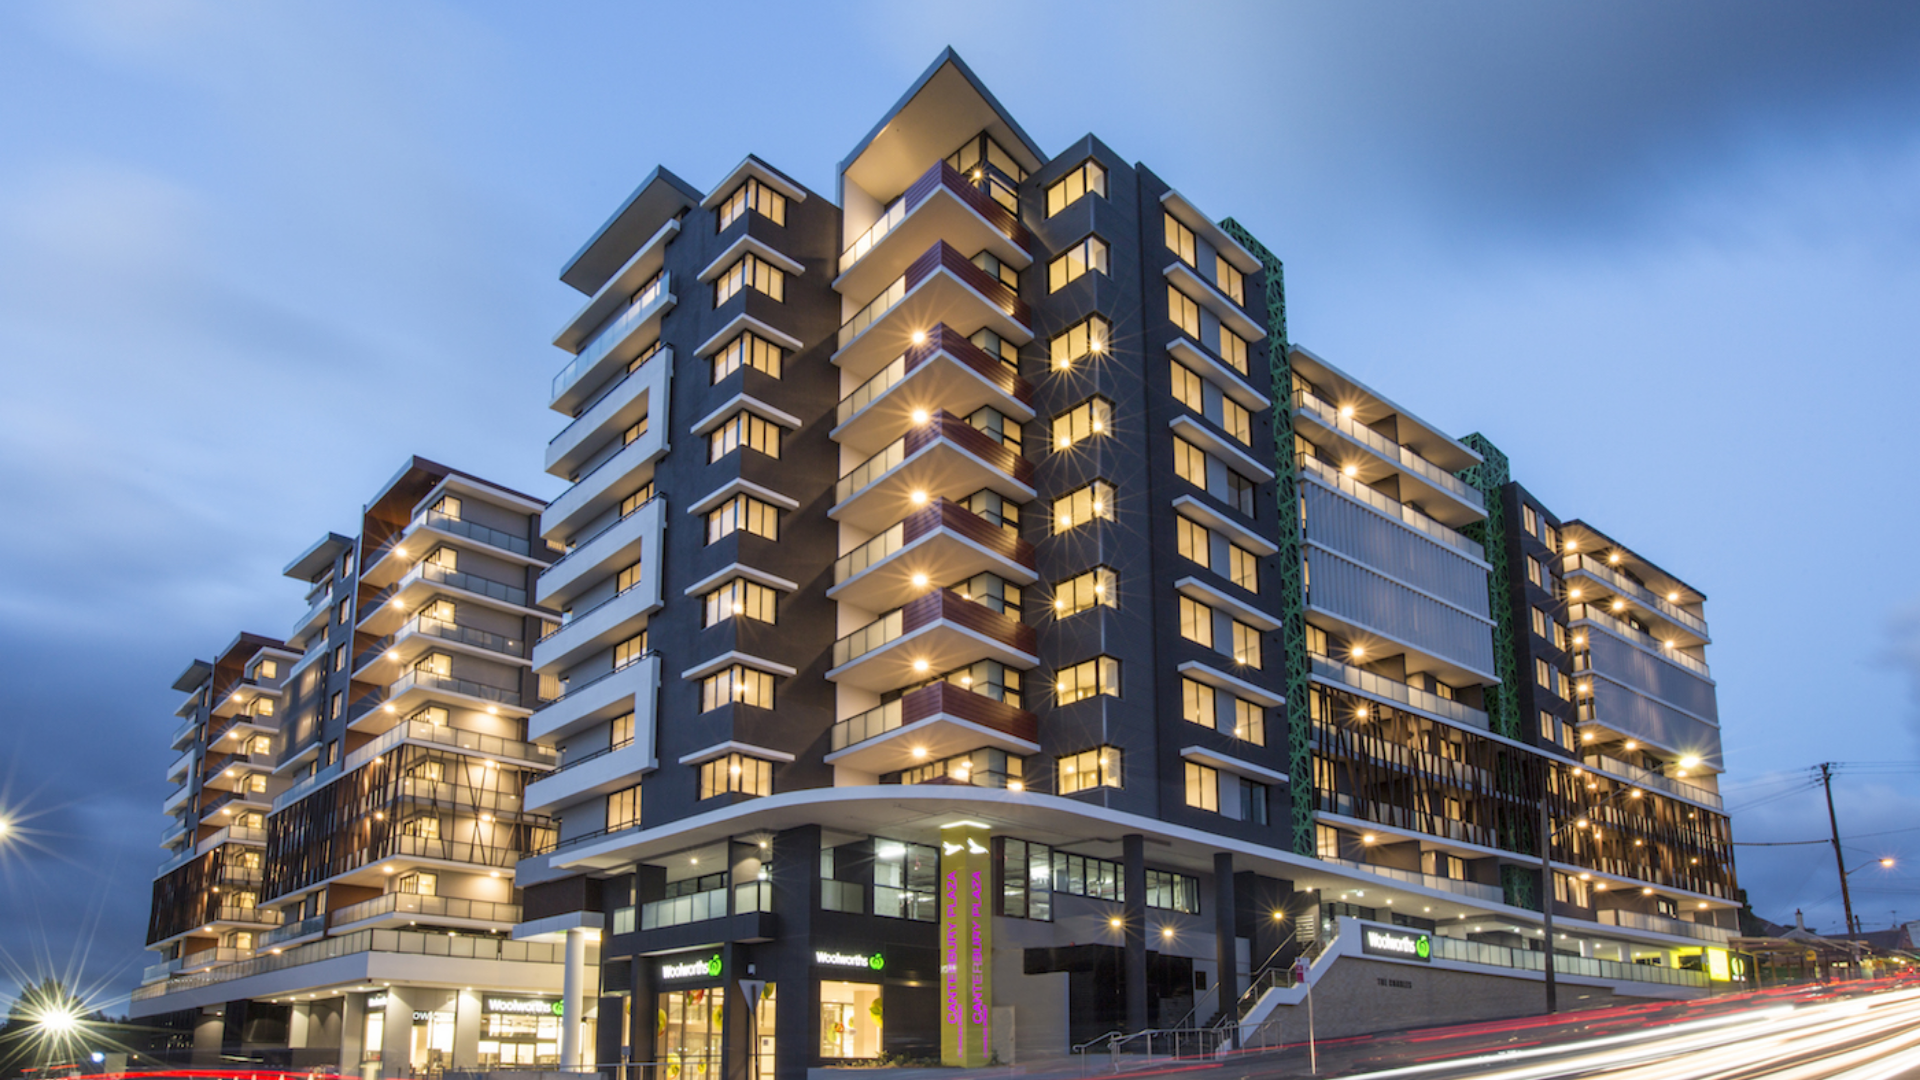 Luxury apartments by Deicorp - Sydney property developers